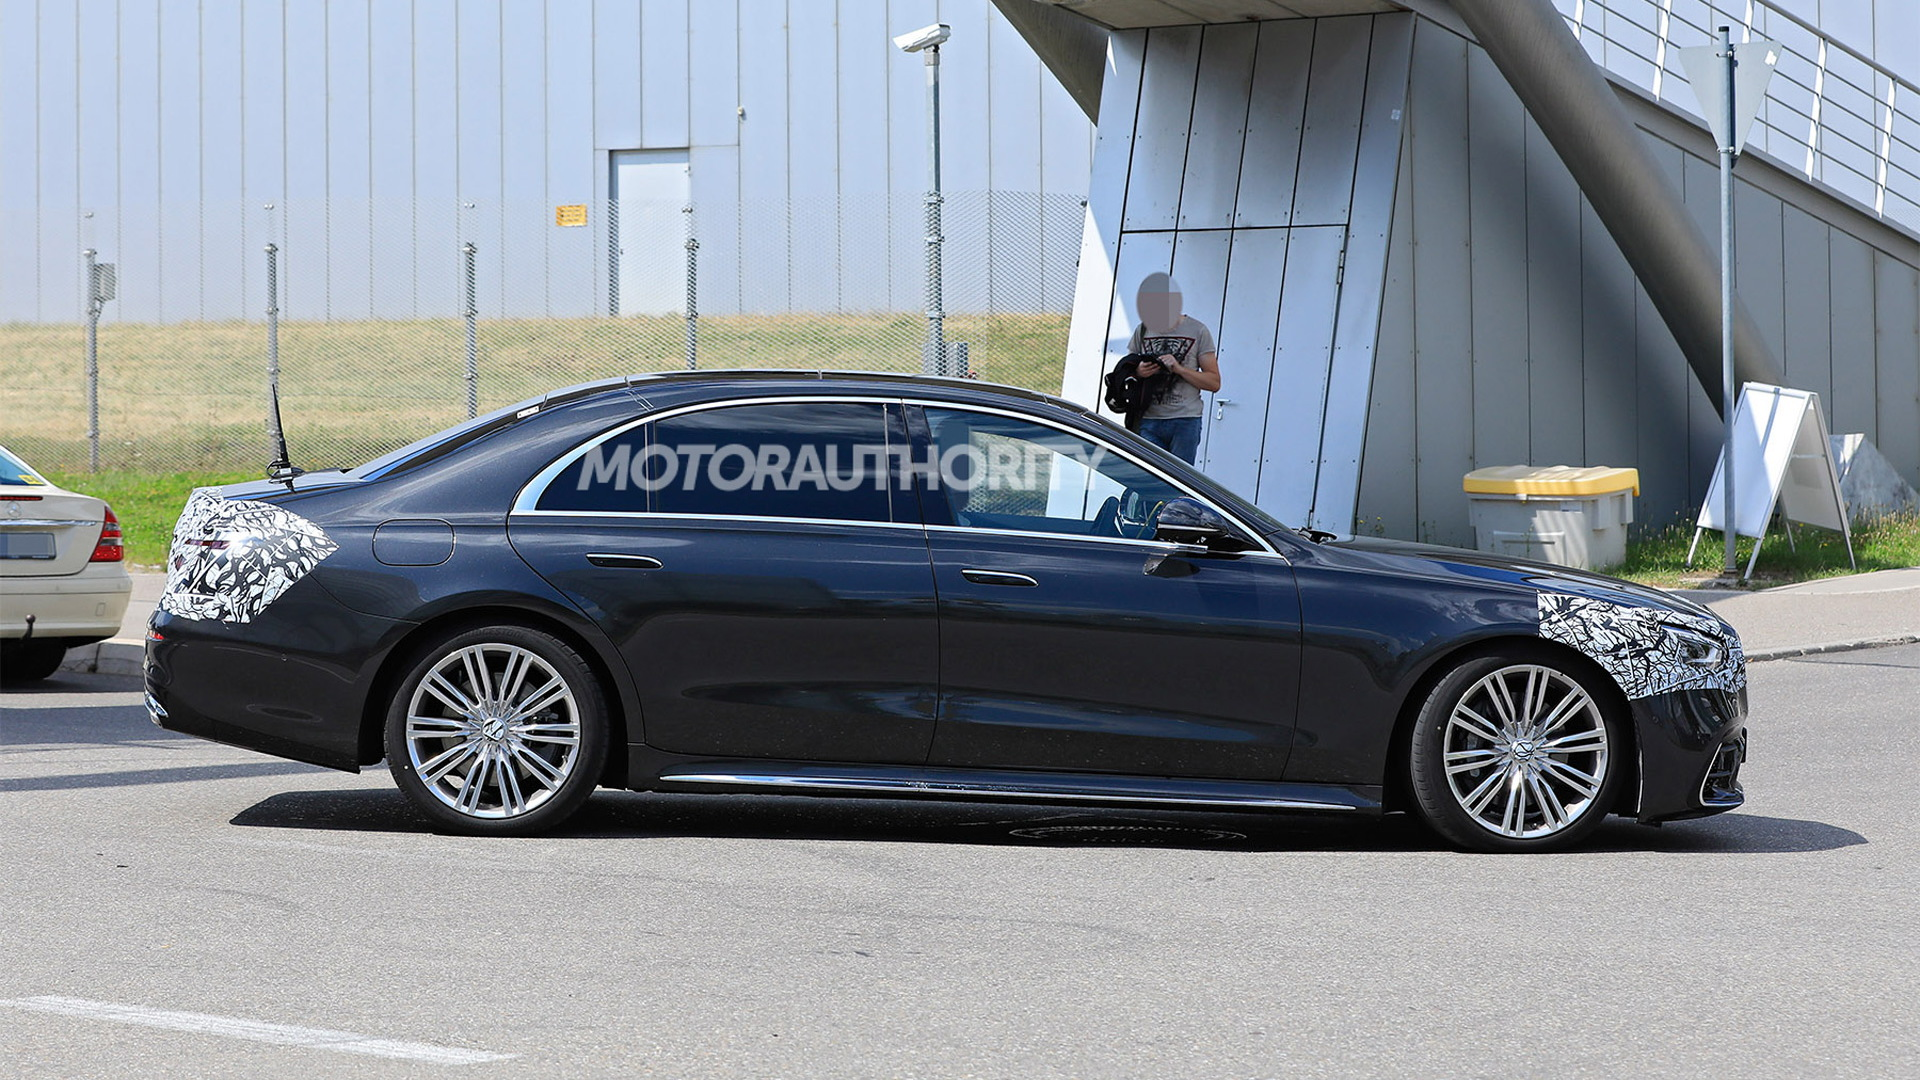 2021 Mercedes-Benz S-Class spy shots - Photo credit: S. Baldauf/SB-Medien